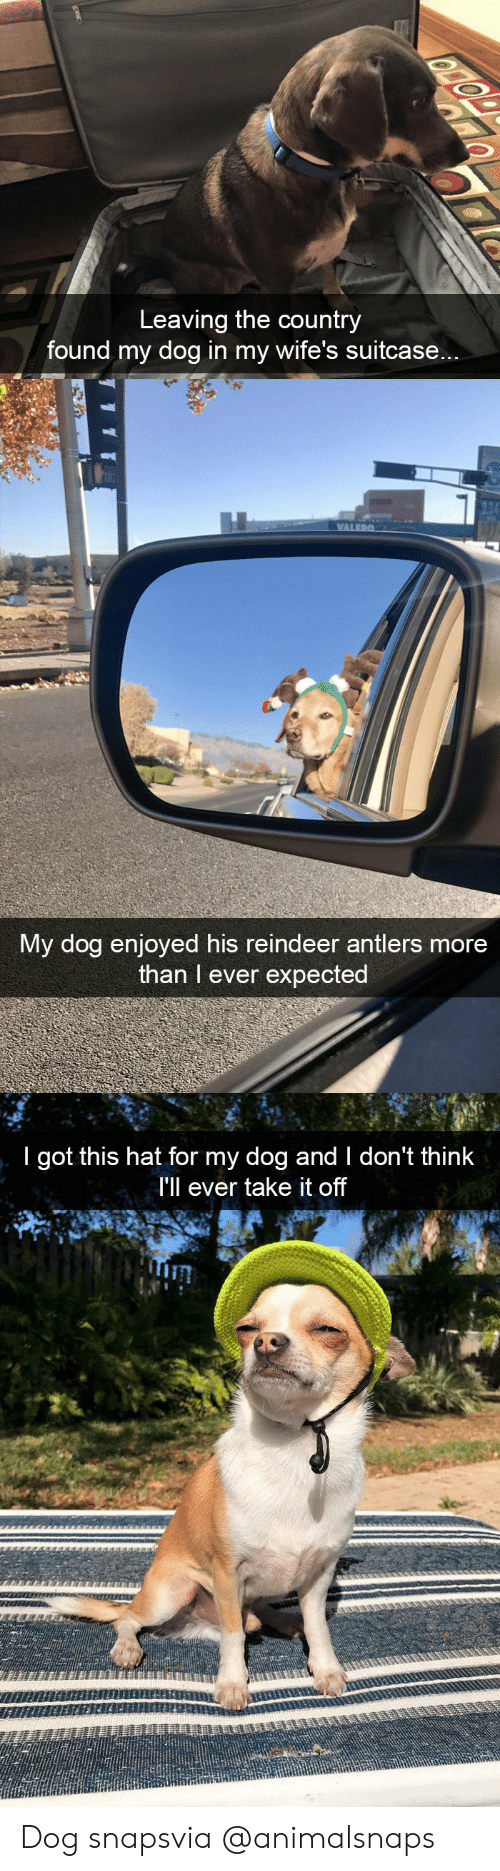 take it off: Leaving the country  found my dog in my wife's suitcase...   My dog enjoyed his reindeer antlers more  than I ever expected   I got this hat for my dog and I don't think  I'll ever take it off  Tin Dog snapsvia @animalsnaps